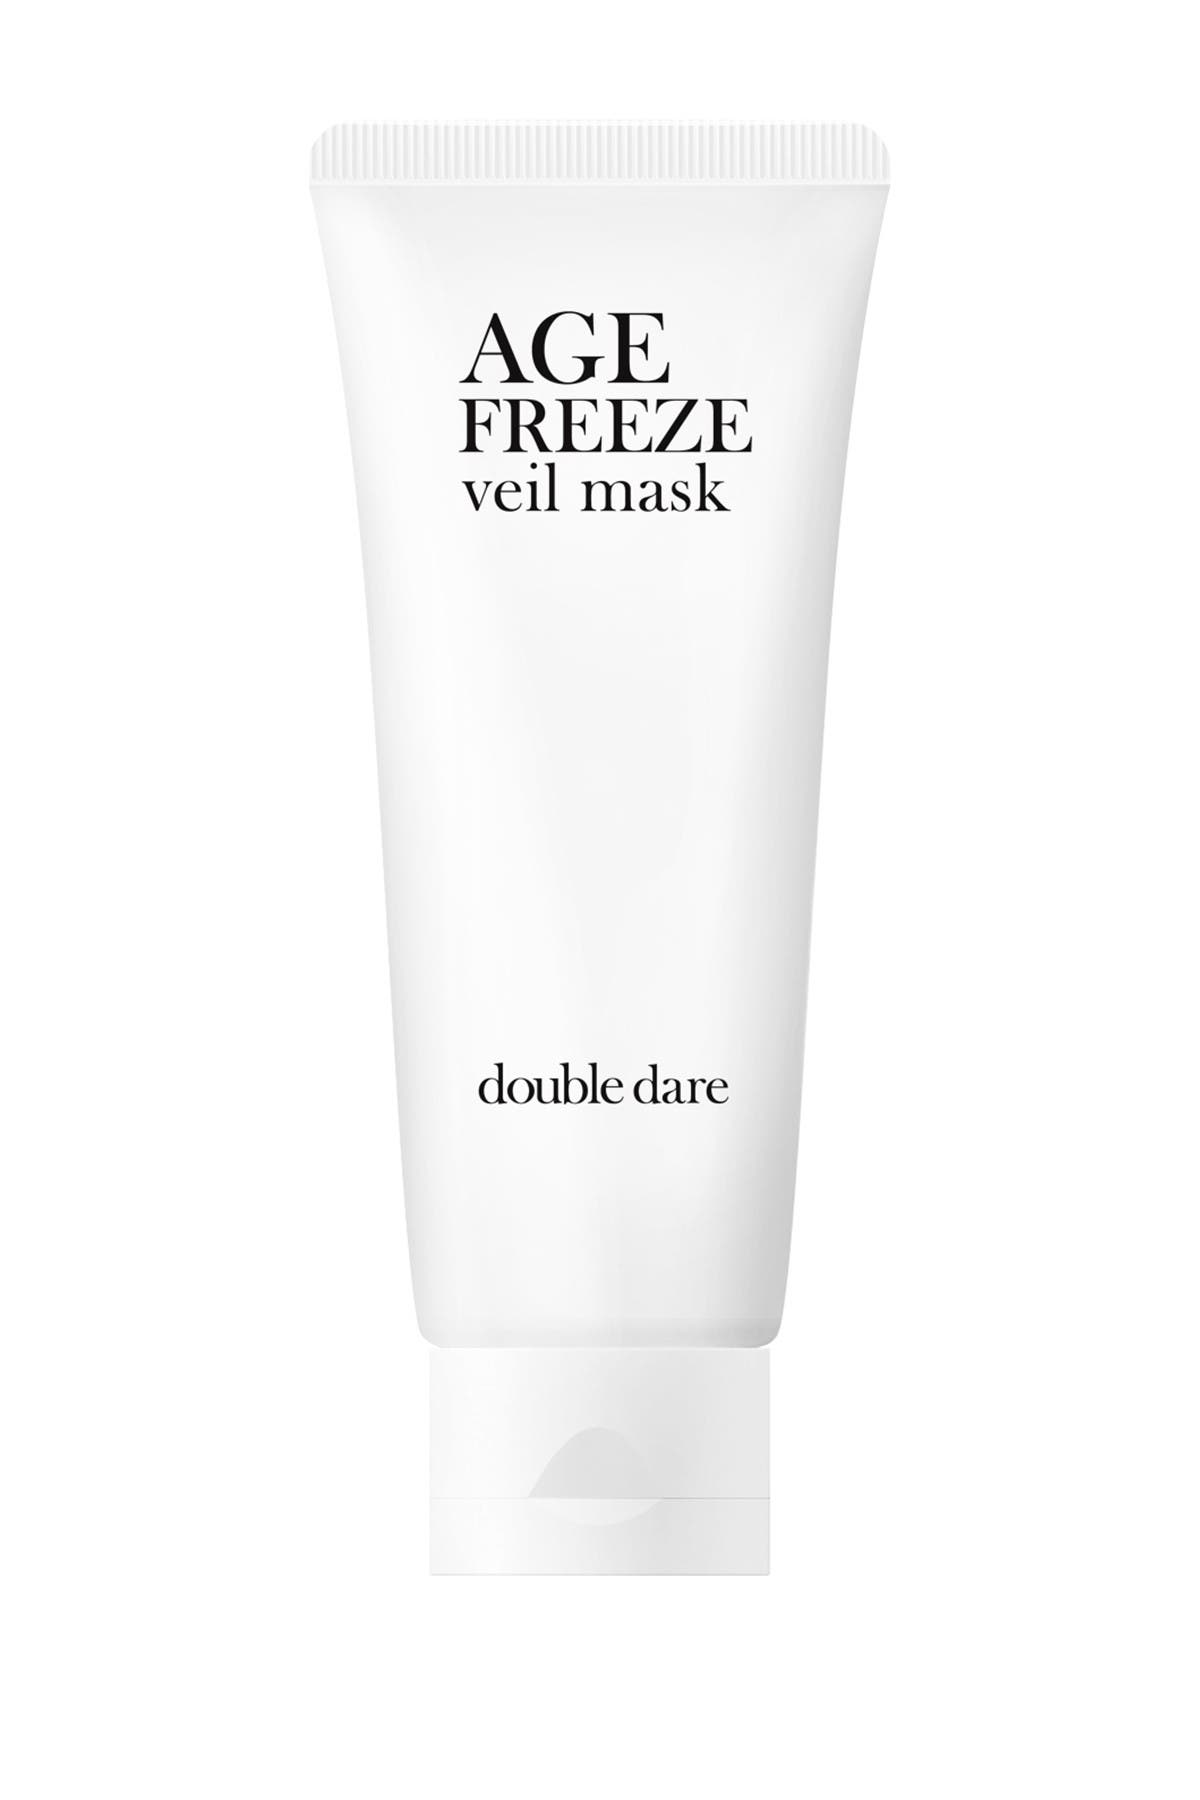 Image of OMG DOUBLE DARE Age-Freeze Veil Mask